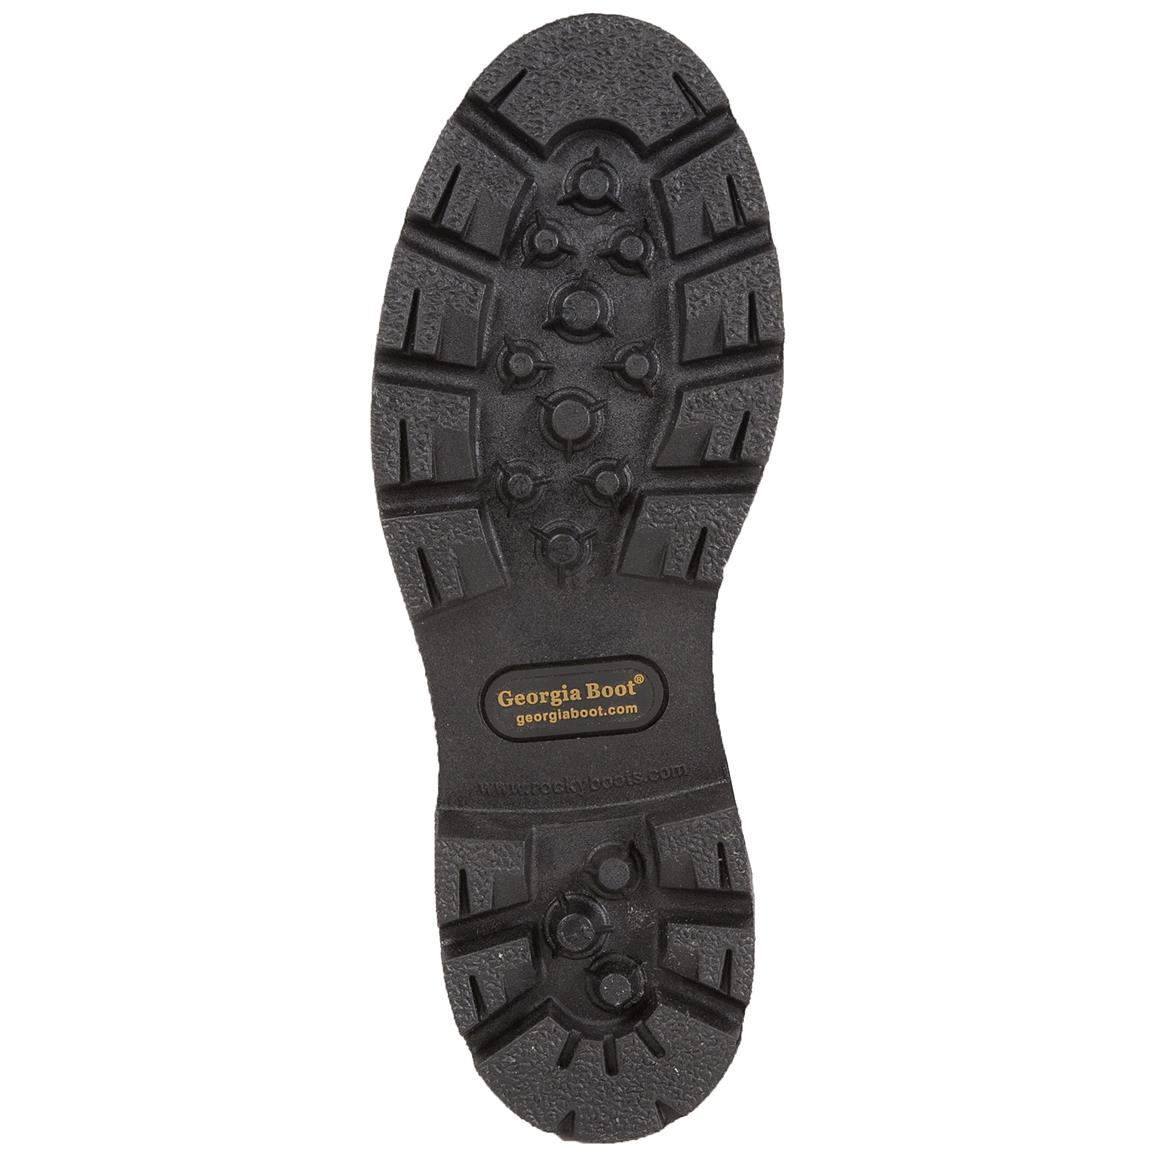 Direct-attached, oil-resistant PVC outsole